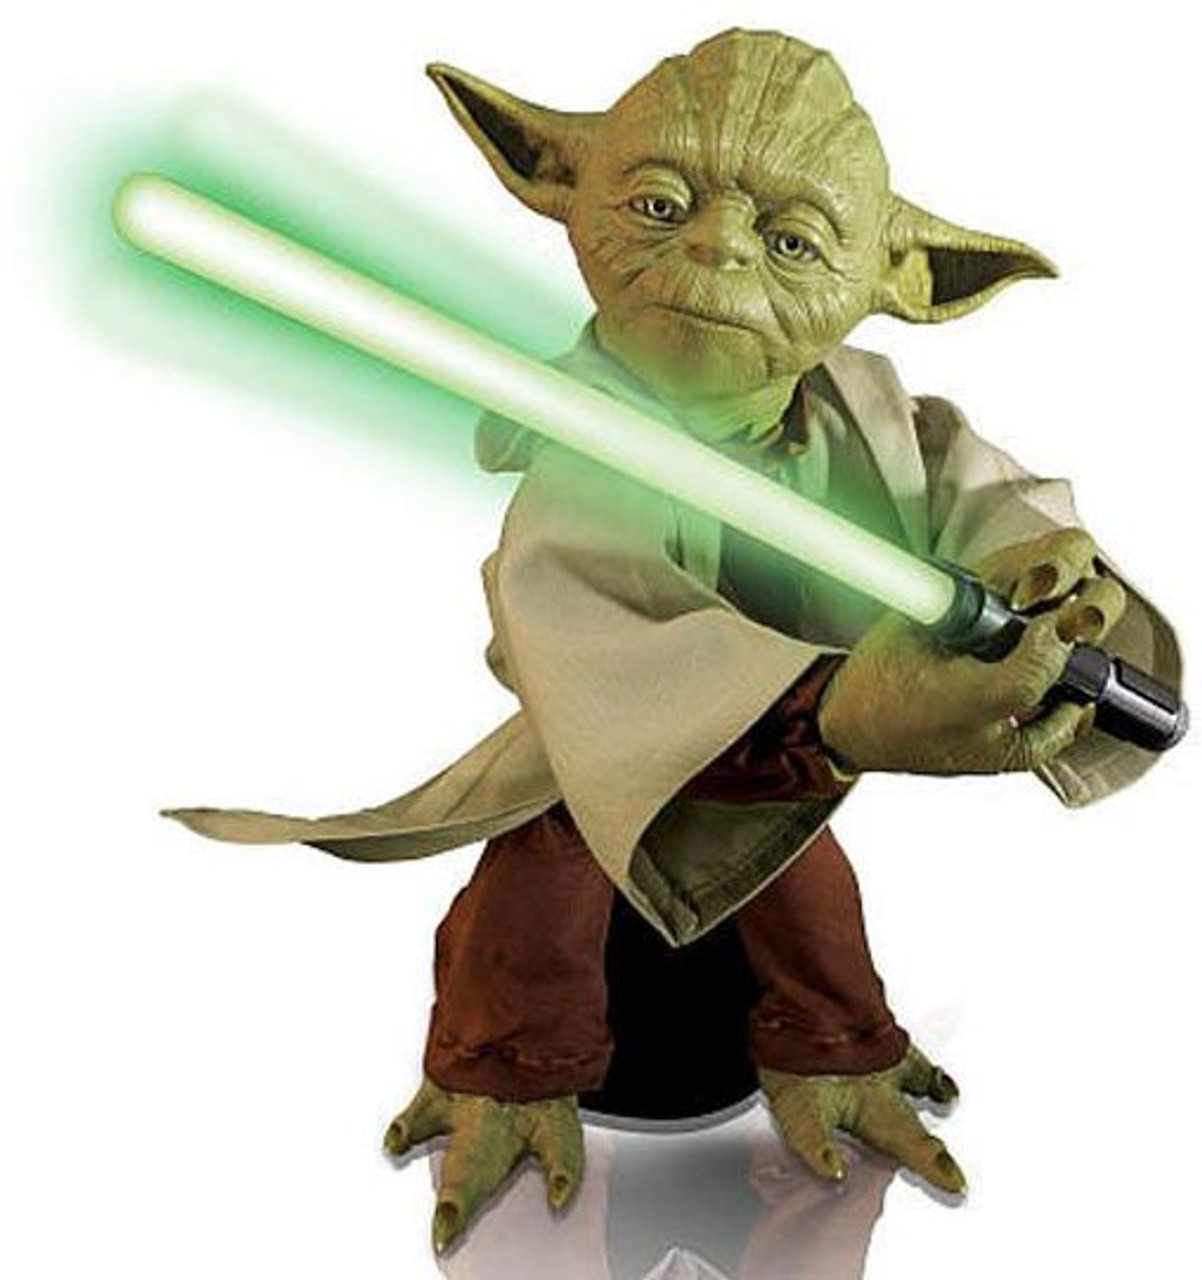 "New Disney Star Wars Yoda Legendary Jedi Master war legend figure 16/"" action 16"